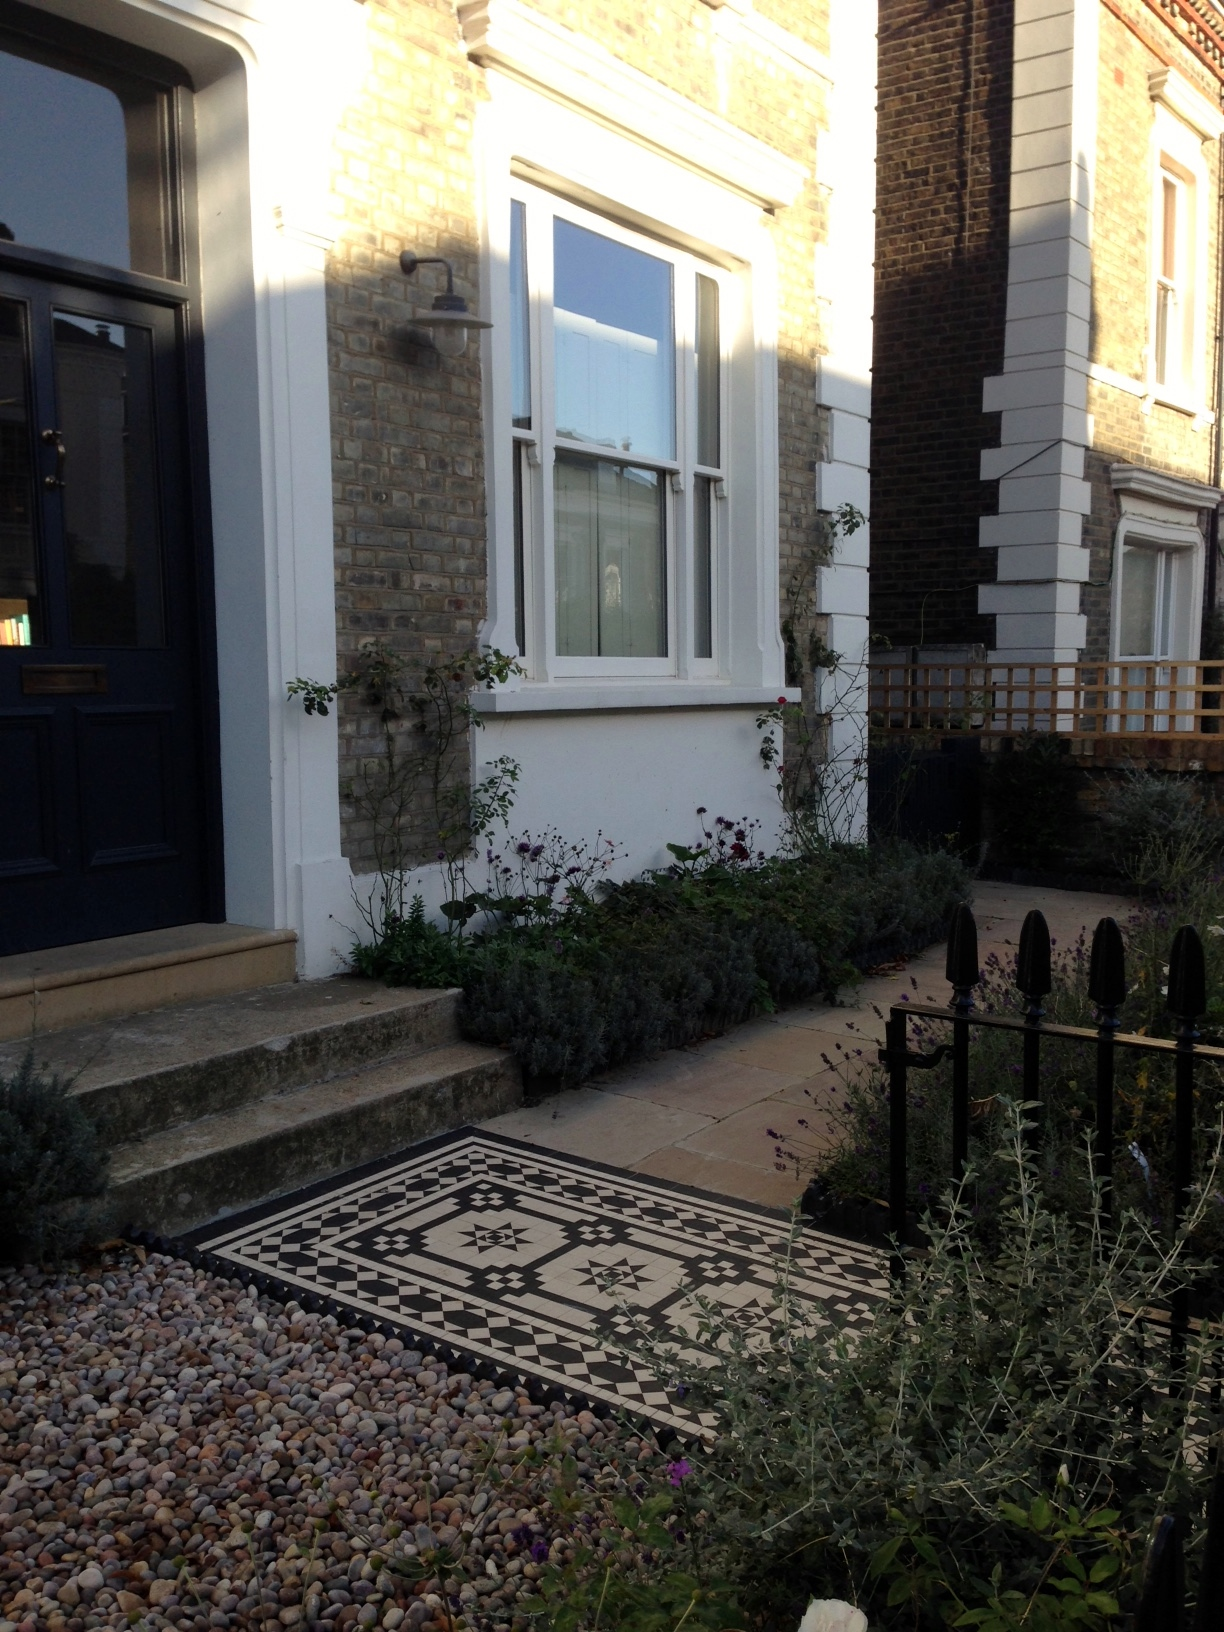 Islington Victorian mosaic tile path York stone sandstone paving wrought iron rails and gate London (39)